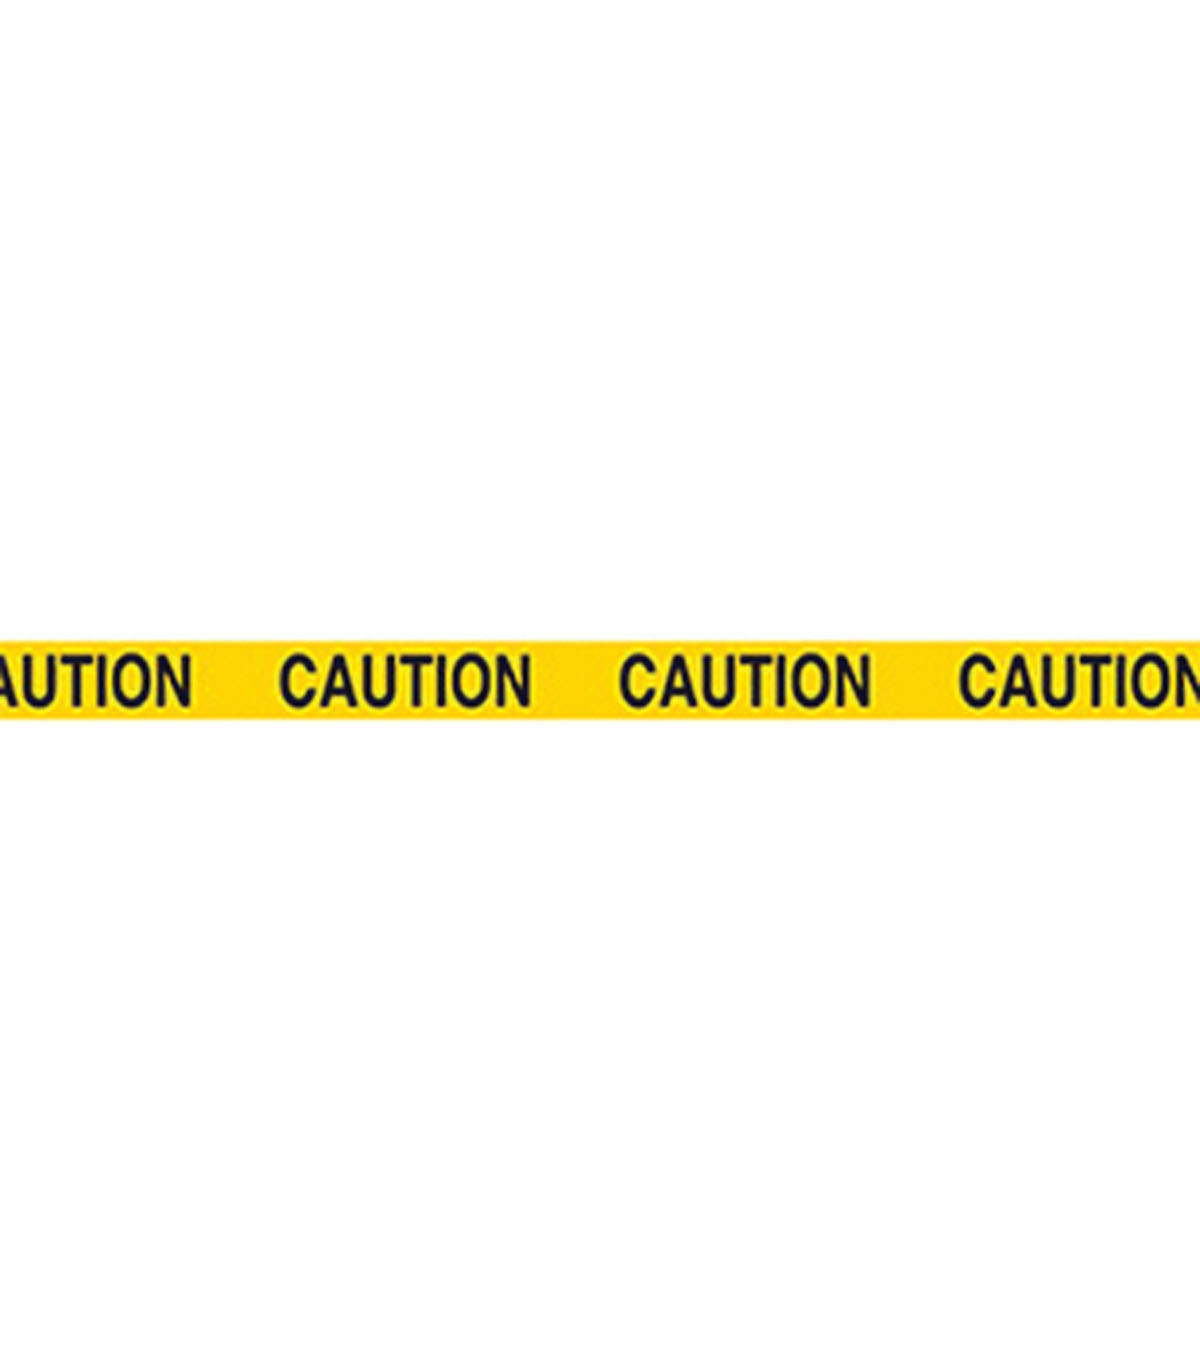 Decoration Tape Pen-Caution Tape